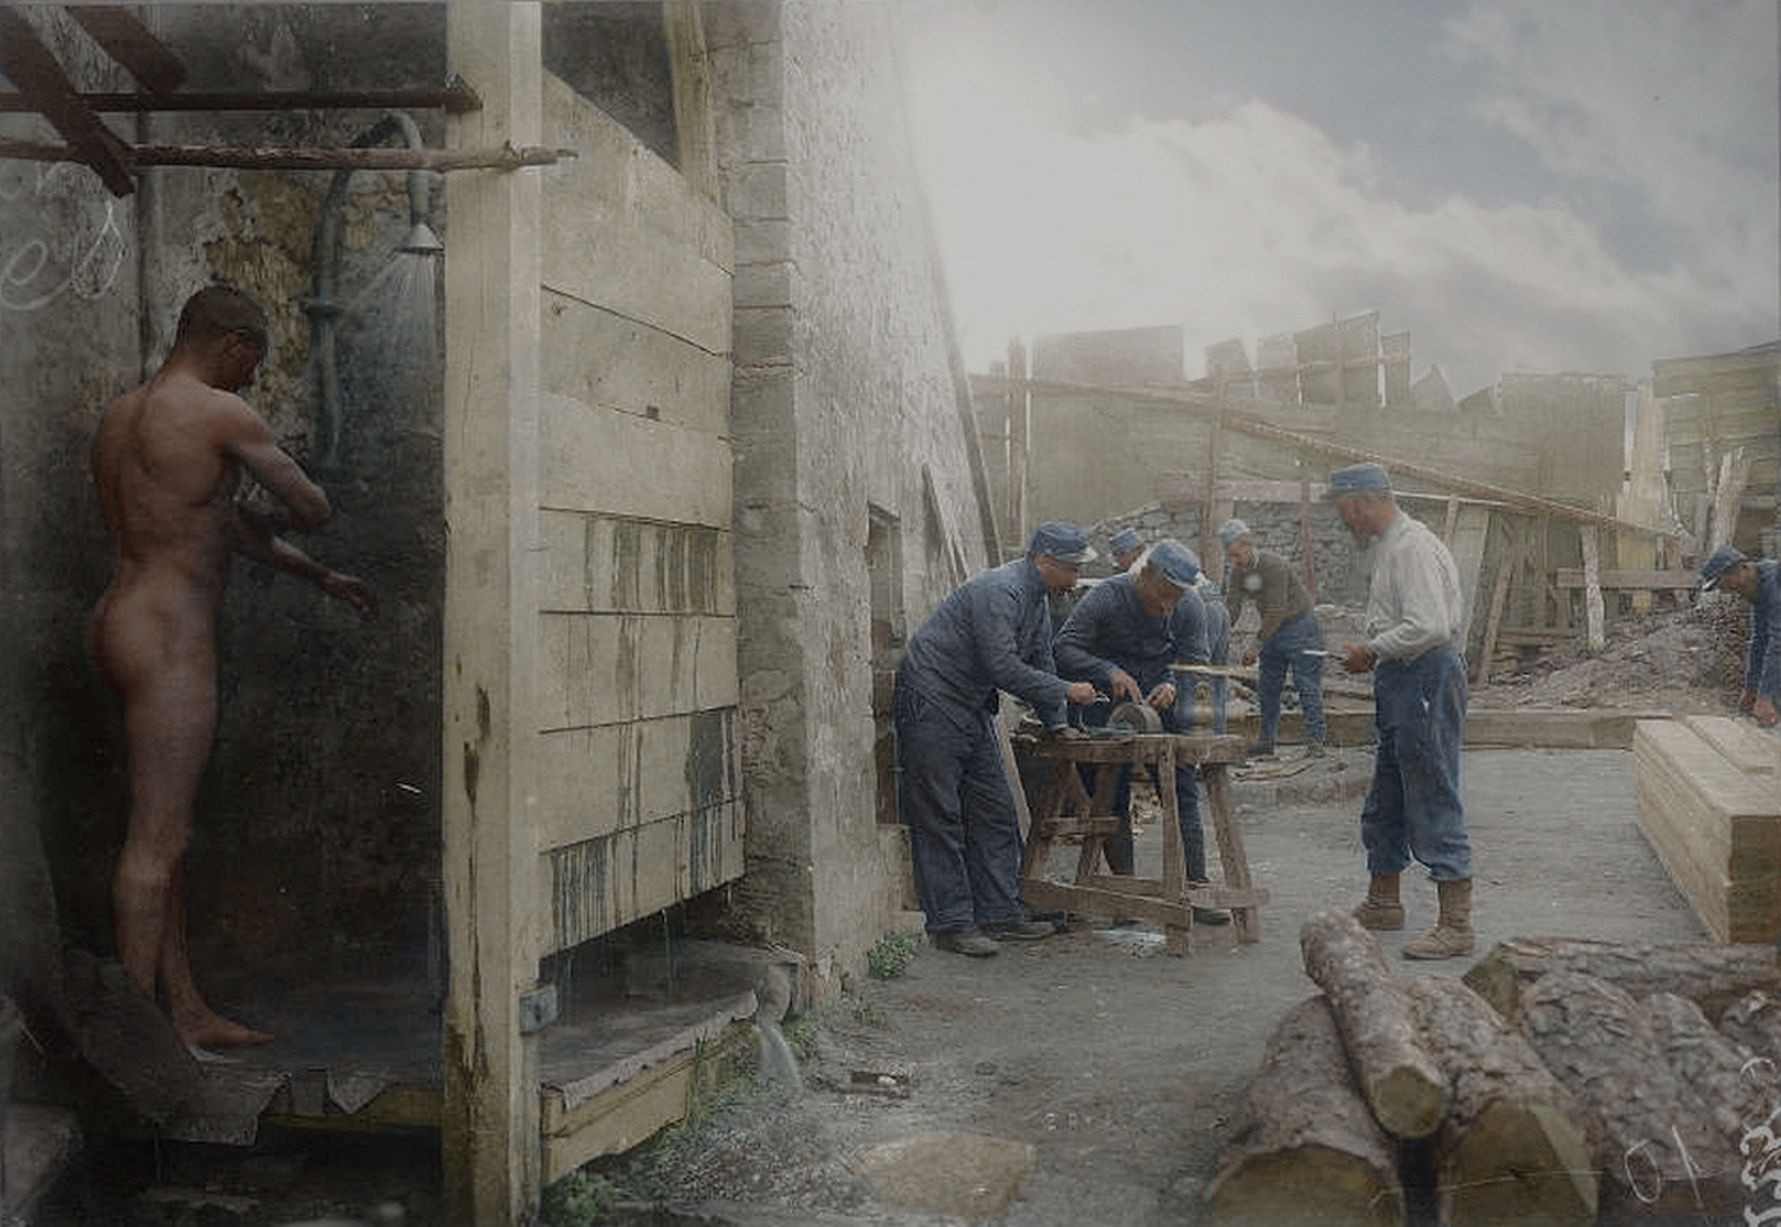 Incredible Pictures Of World War 1 In Colour Reveal